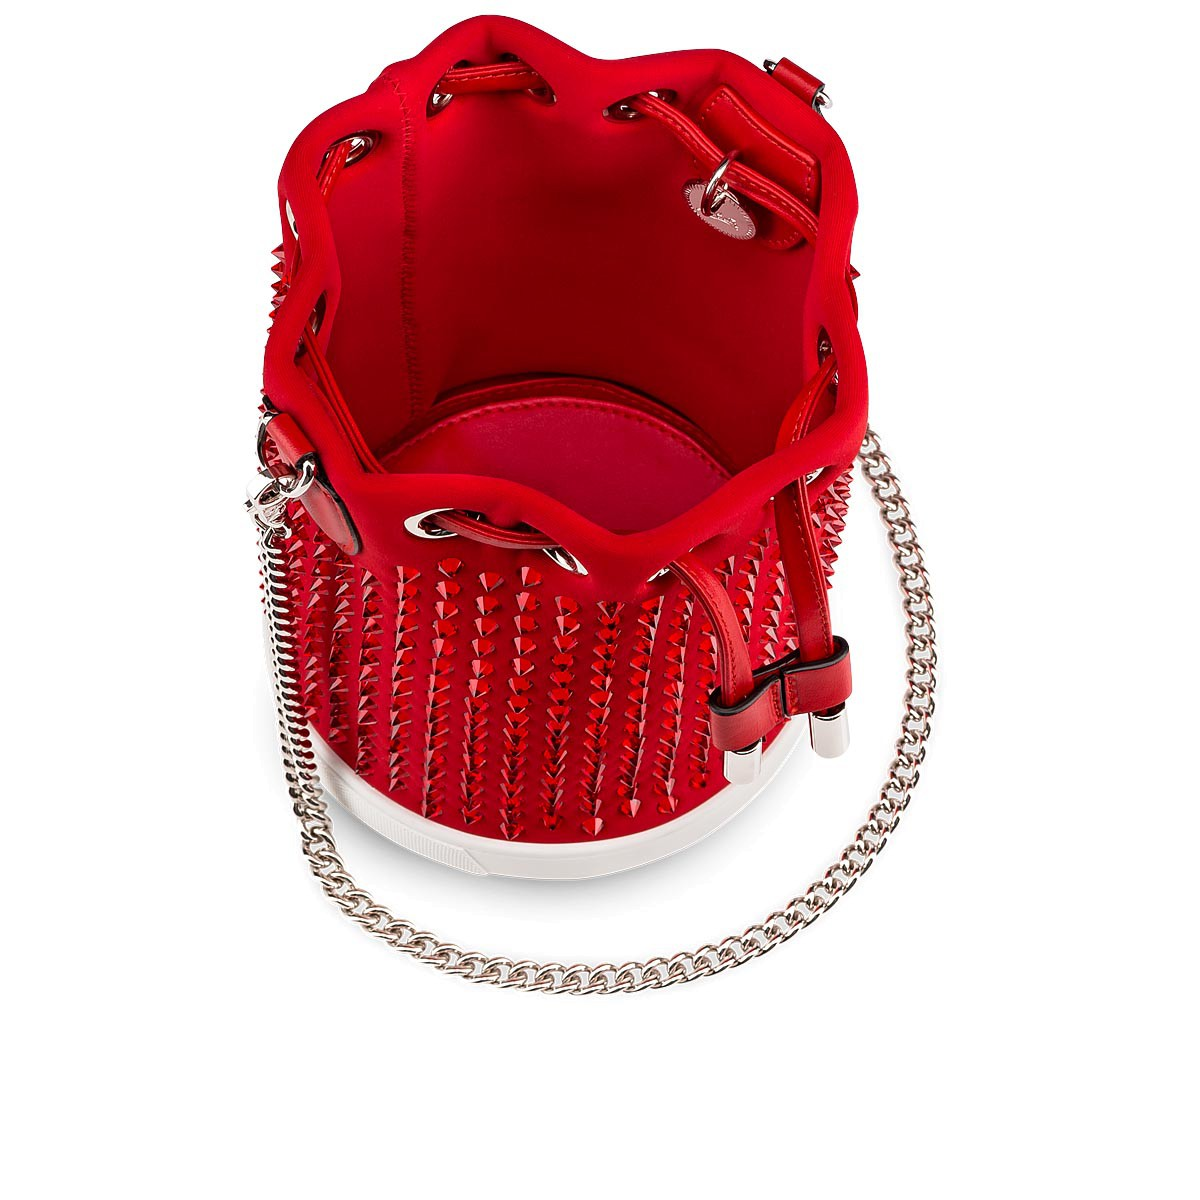 Women Bags - Marie Jane Bucket Bag - Christian Louboutin